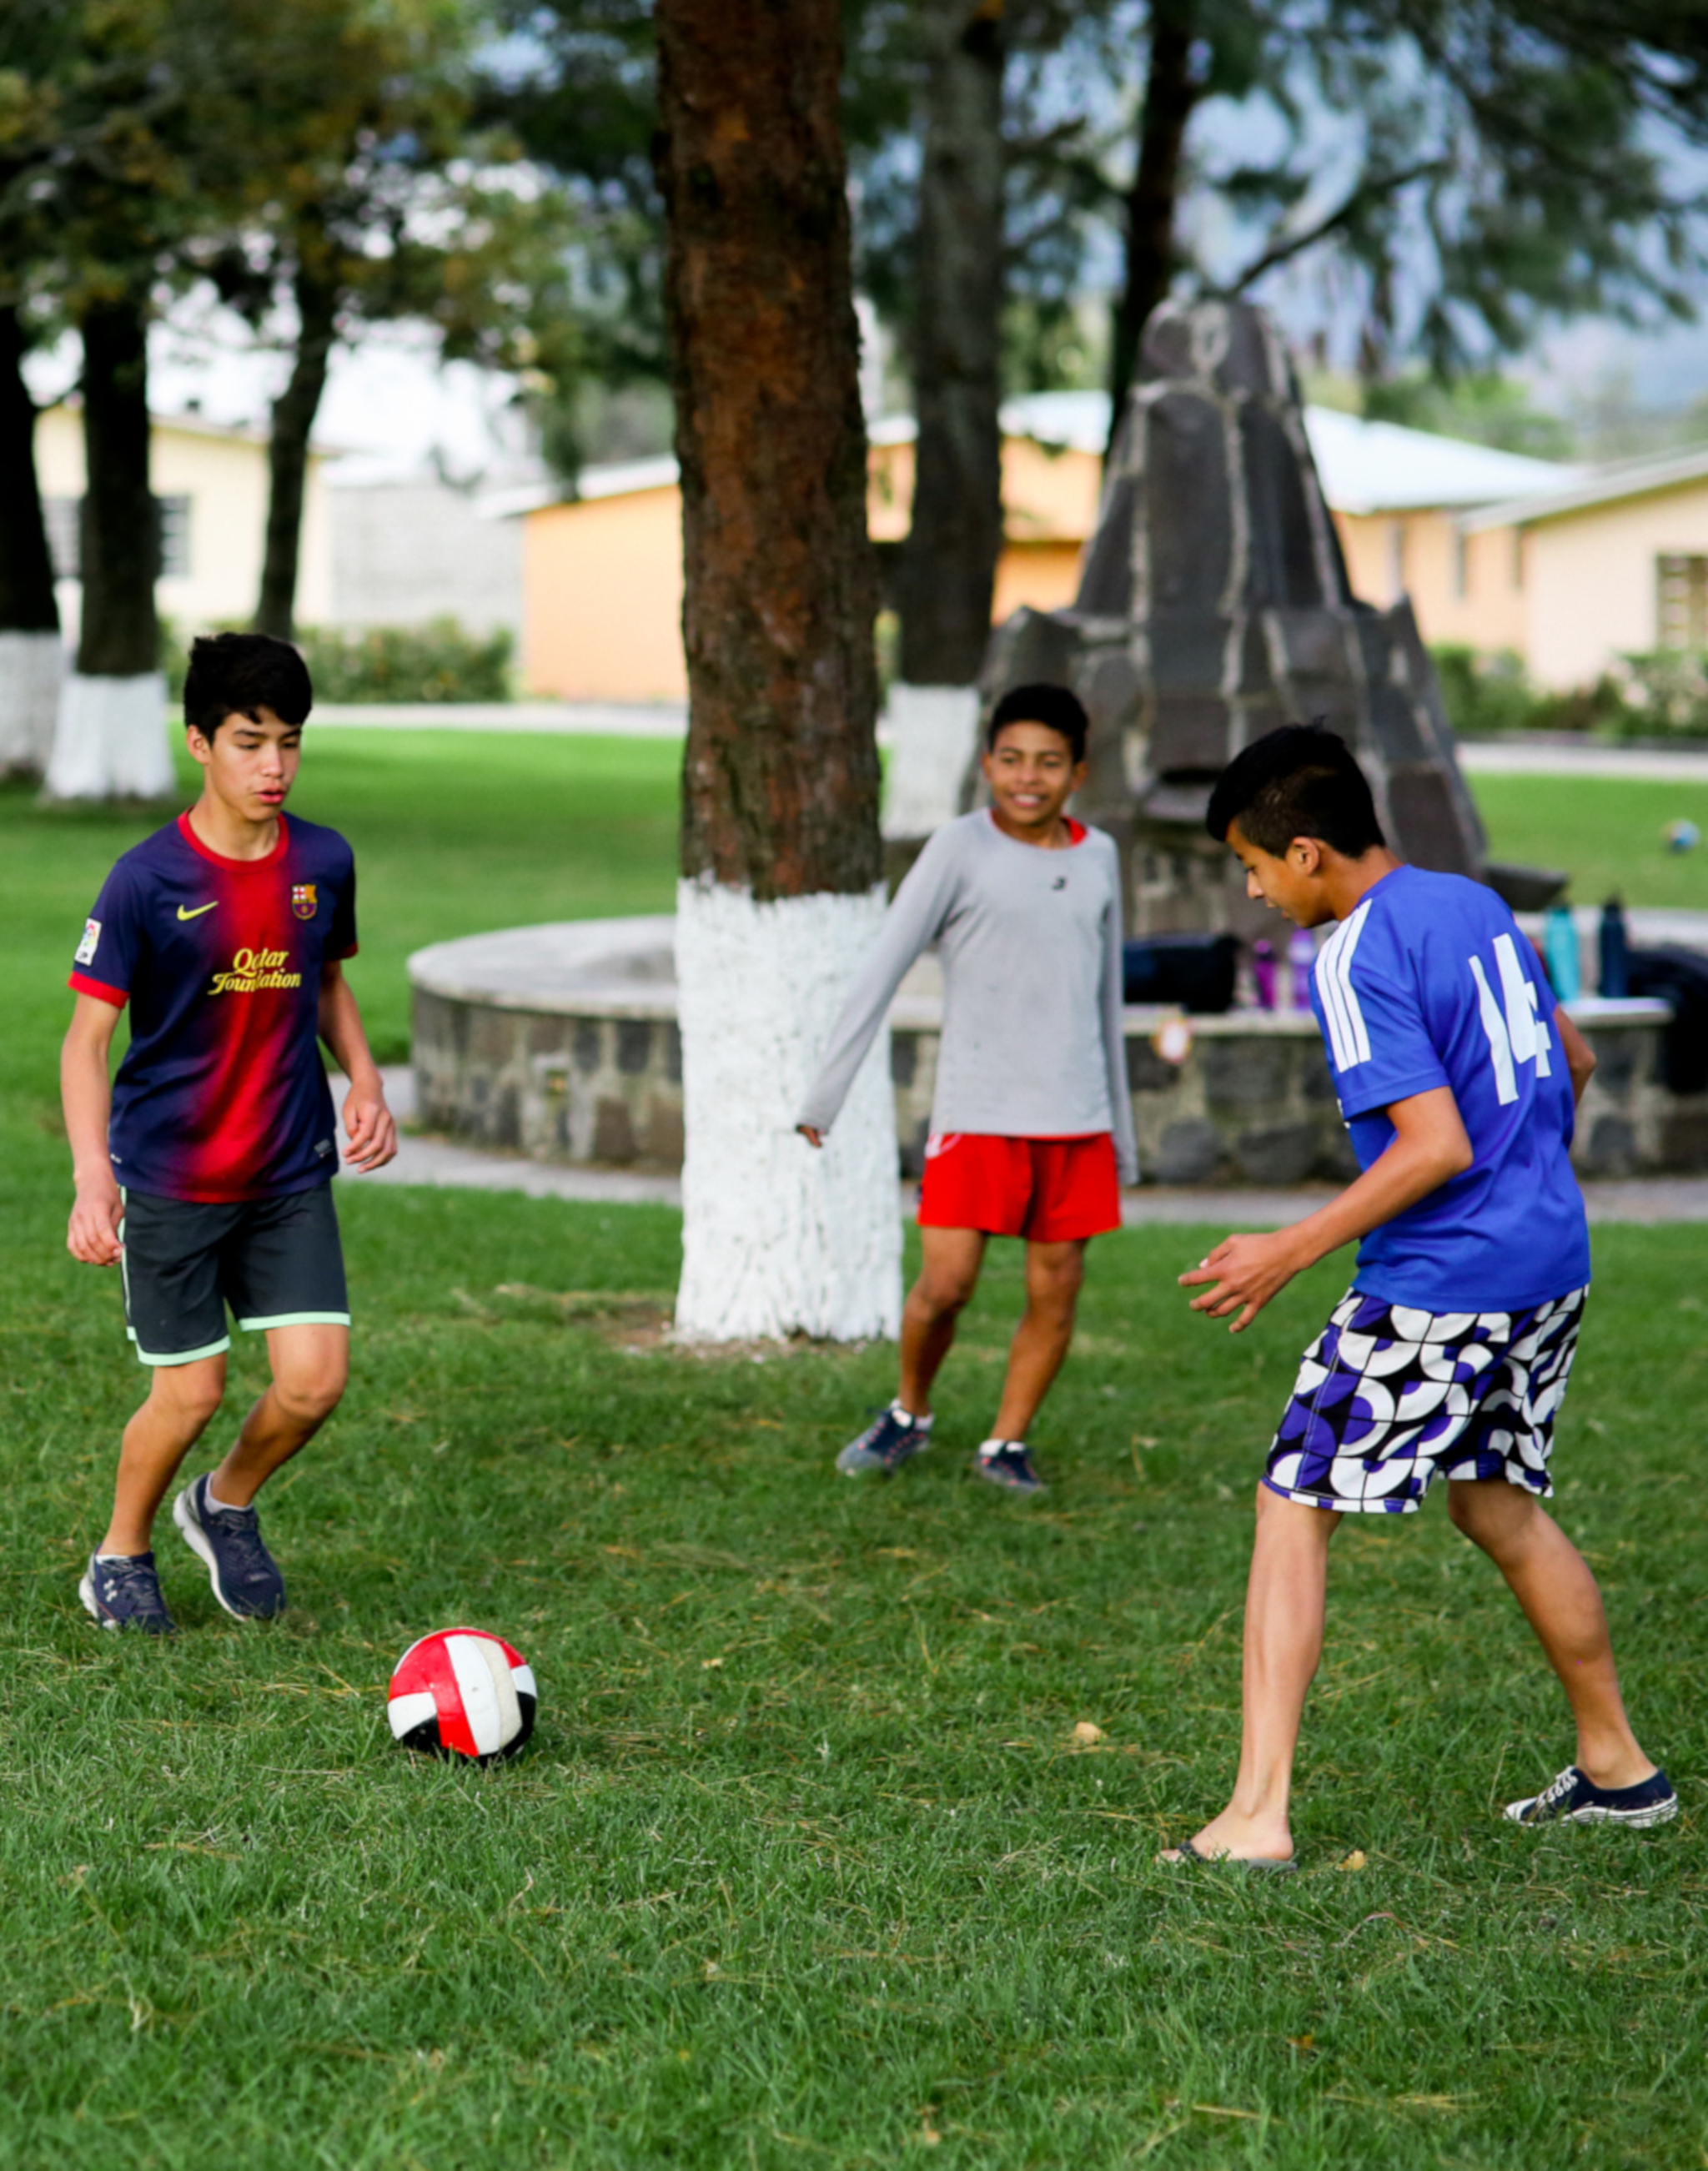 3 boys playing soccer in the main field